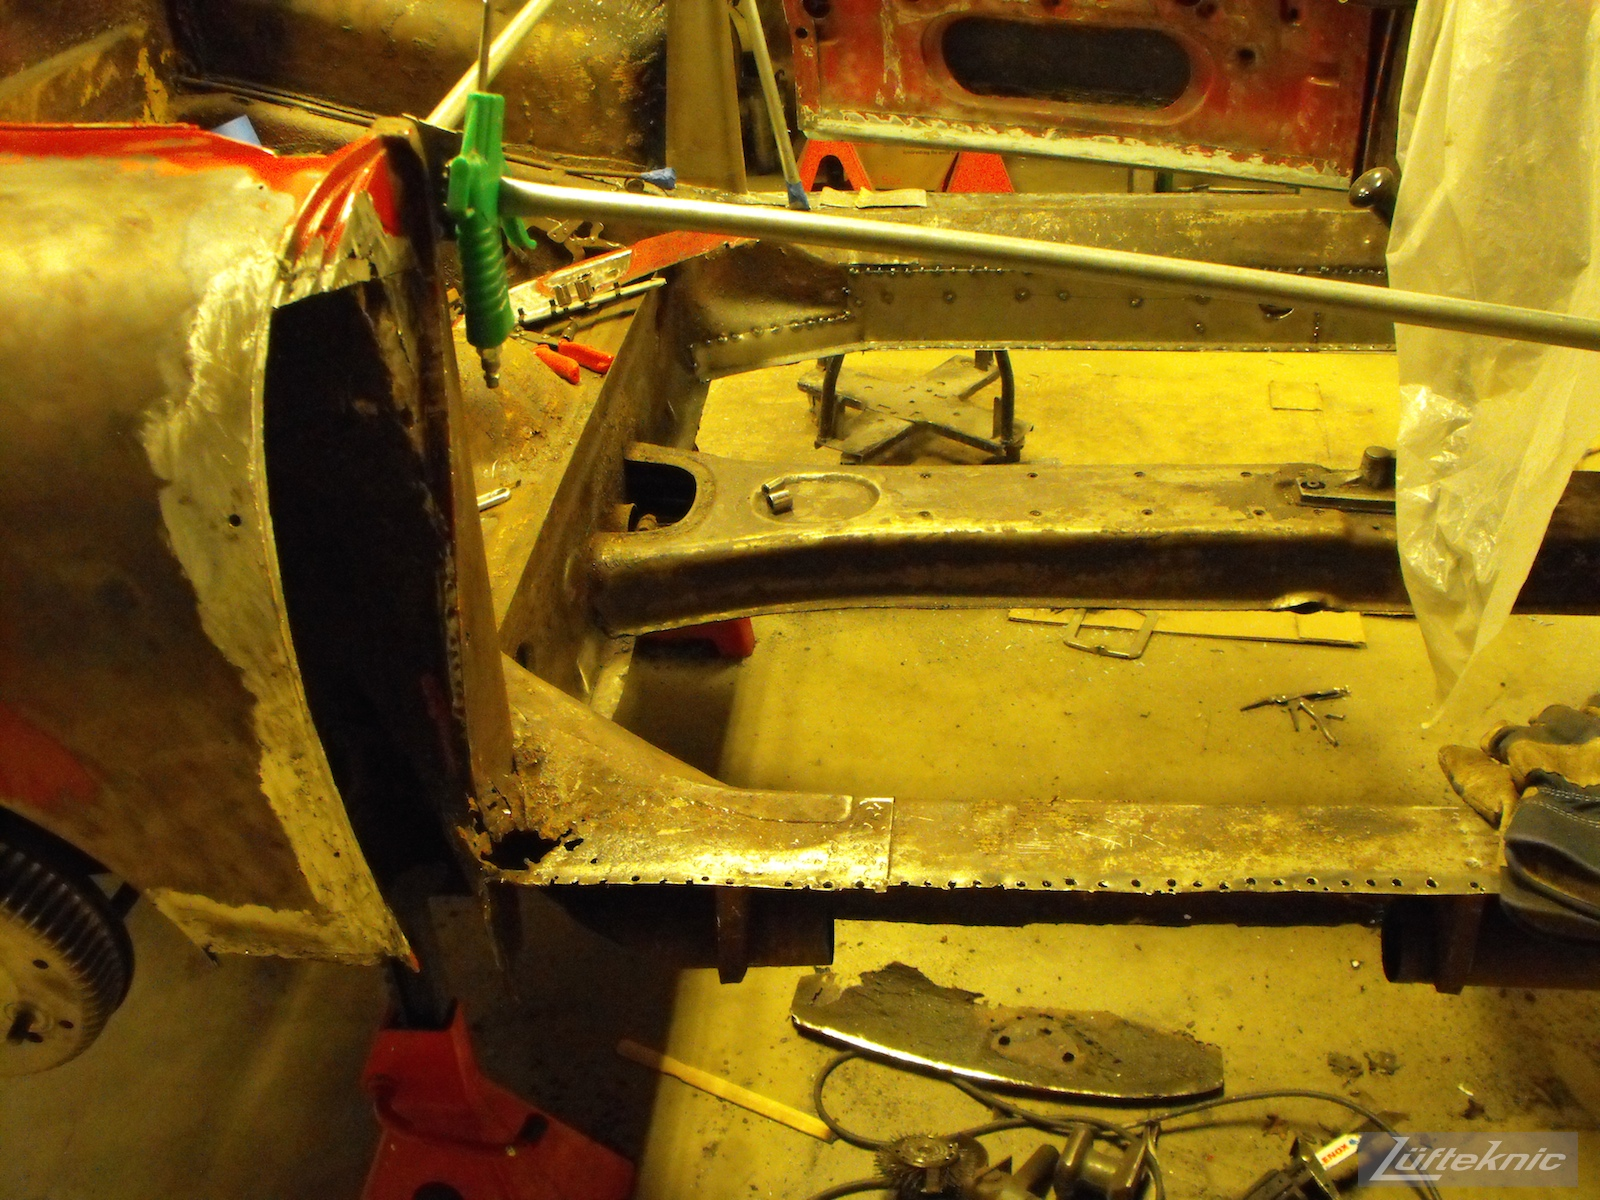 Deep into rust repair on a 1961 Porsche 356B Roadster restoration.